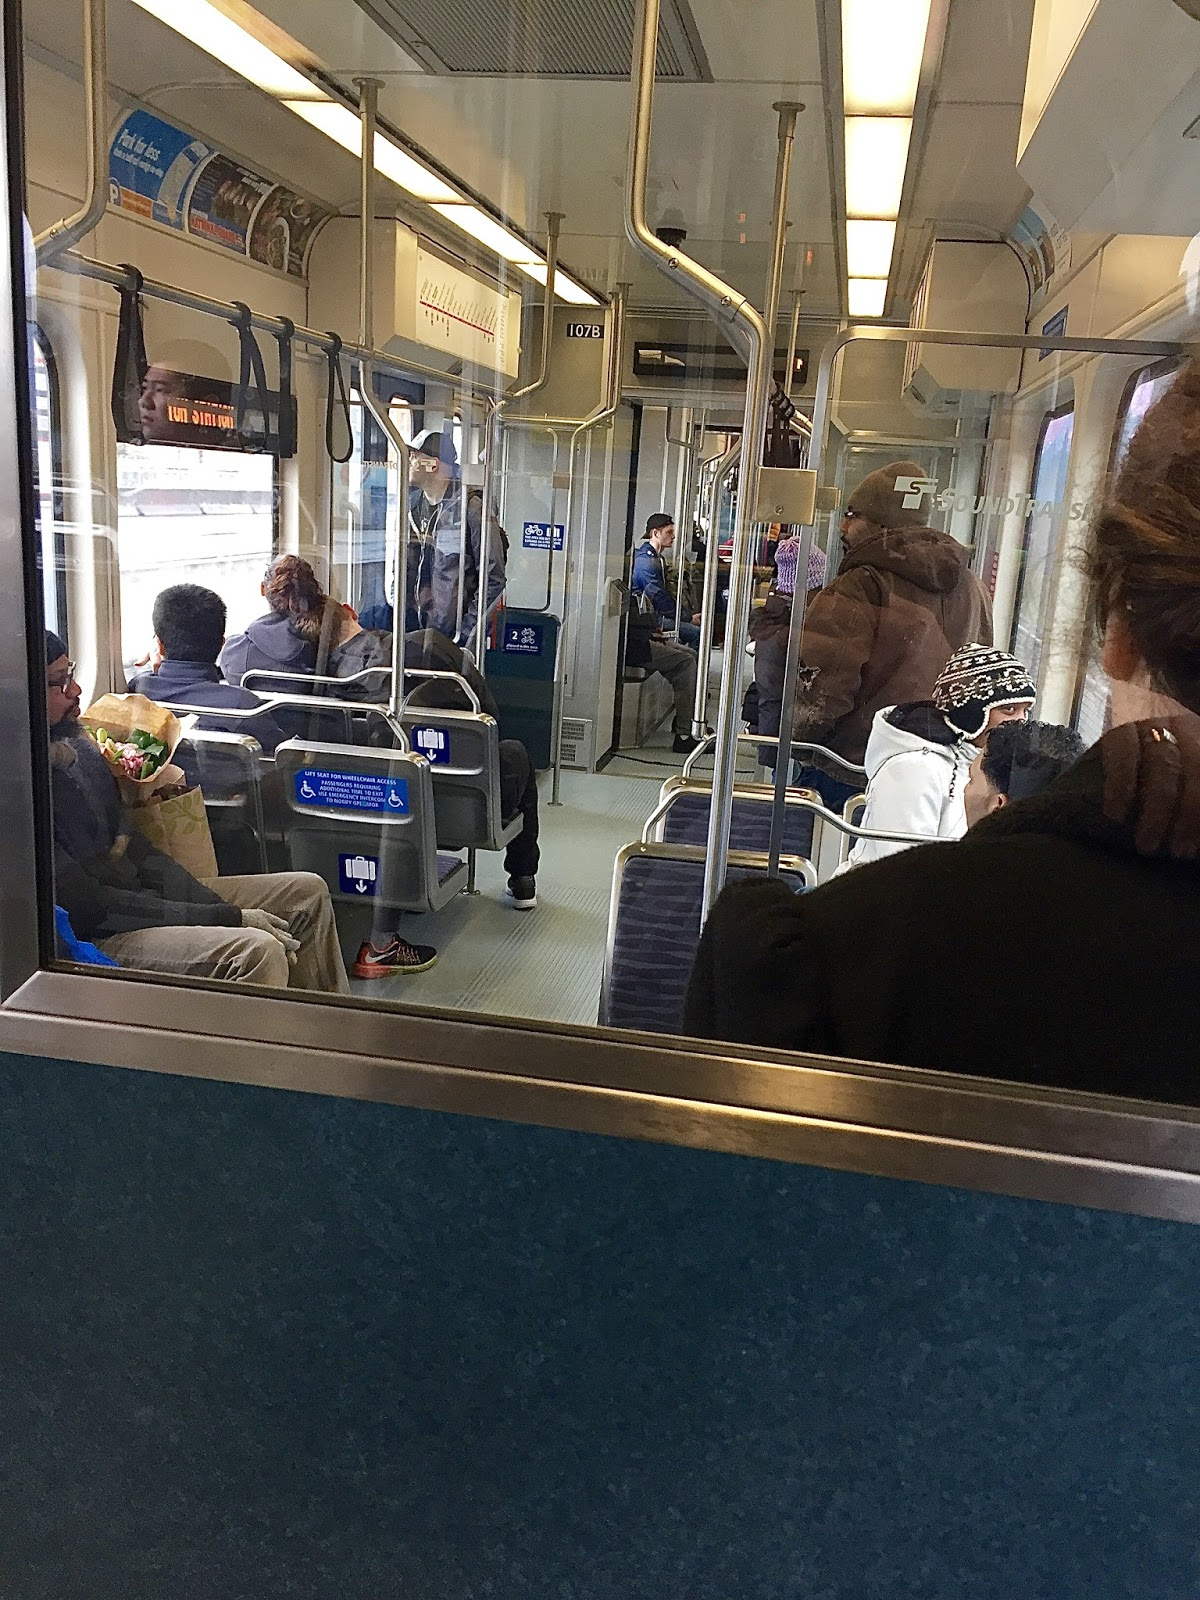 Teacher Tom Teachherpleaseblogspotcom I Was Riding The Light Rail Home From Airport A Father And His Son Who Looked To Be About Five Boarded Train Together Immediately